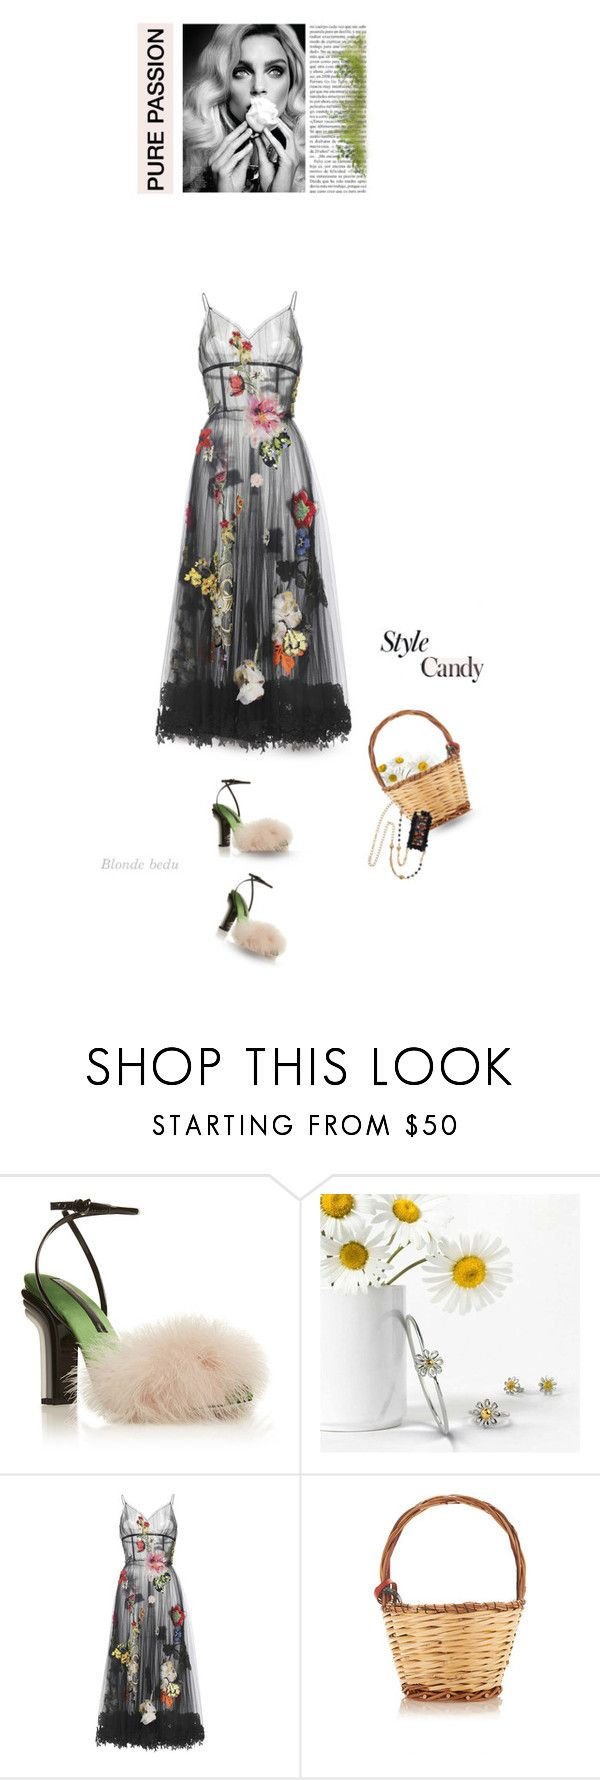 """A lack of passion is fatal"" by blonde-bedu ❤ liked on Polyvore featuring Marco de Vincenzo, Bling Jewelry, Dolce&Gabbana and DuÅ¡an"